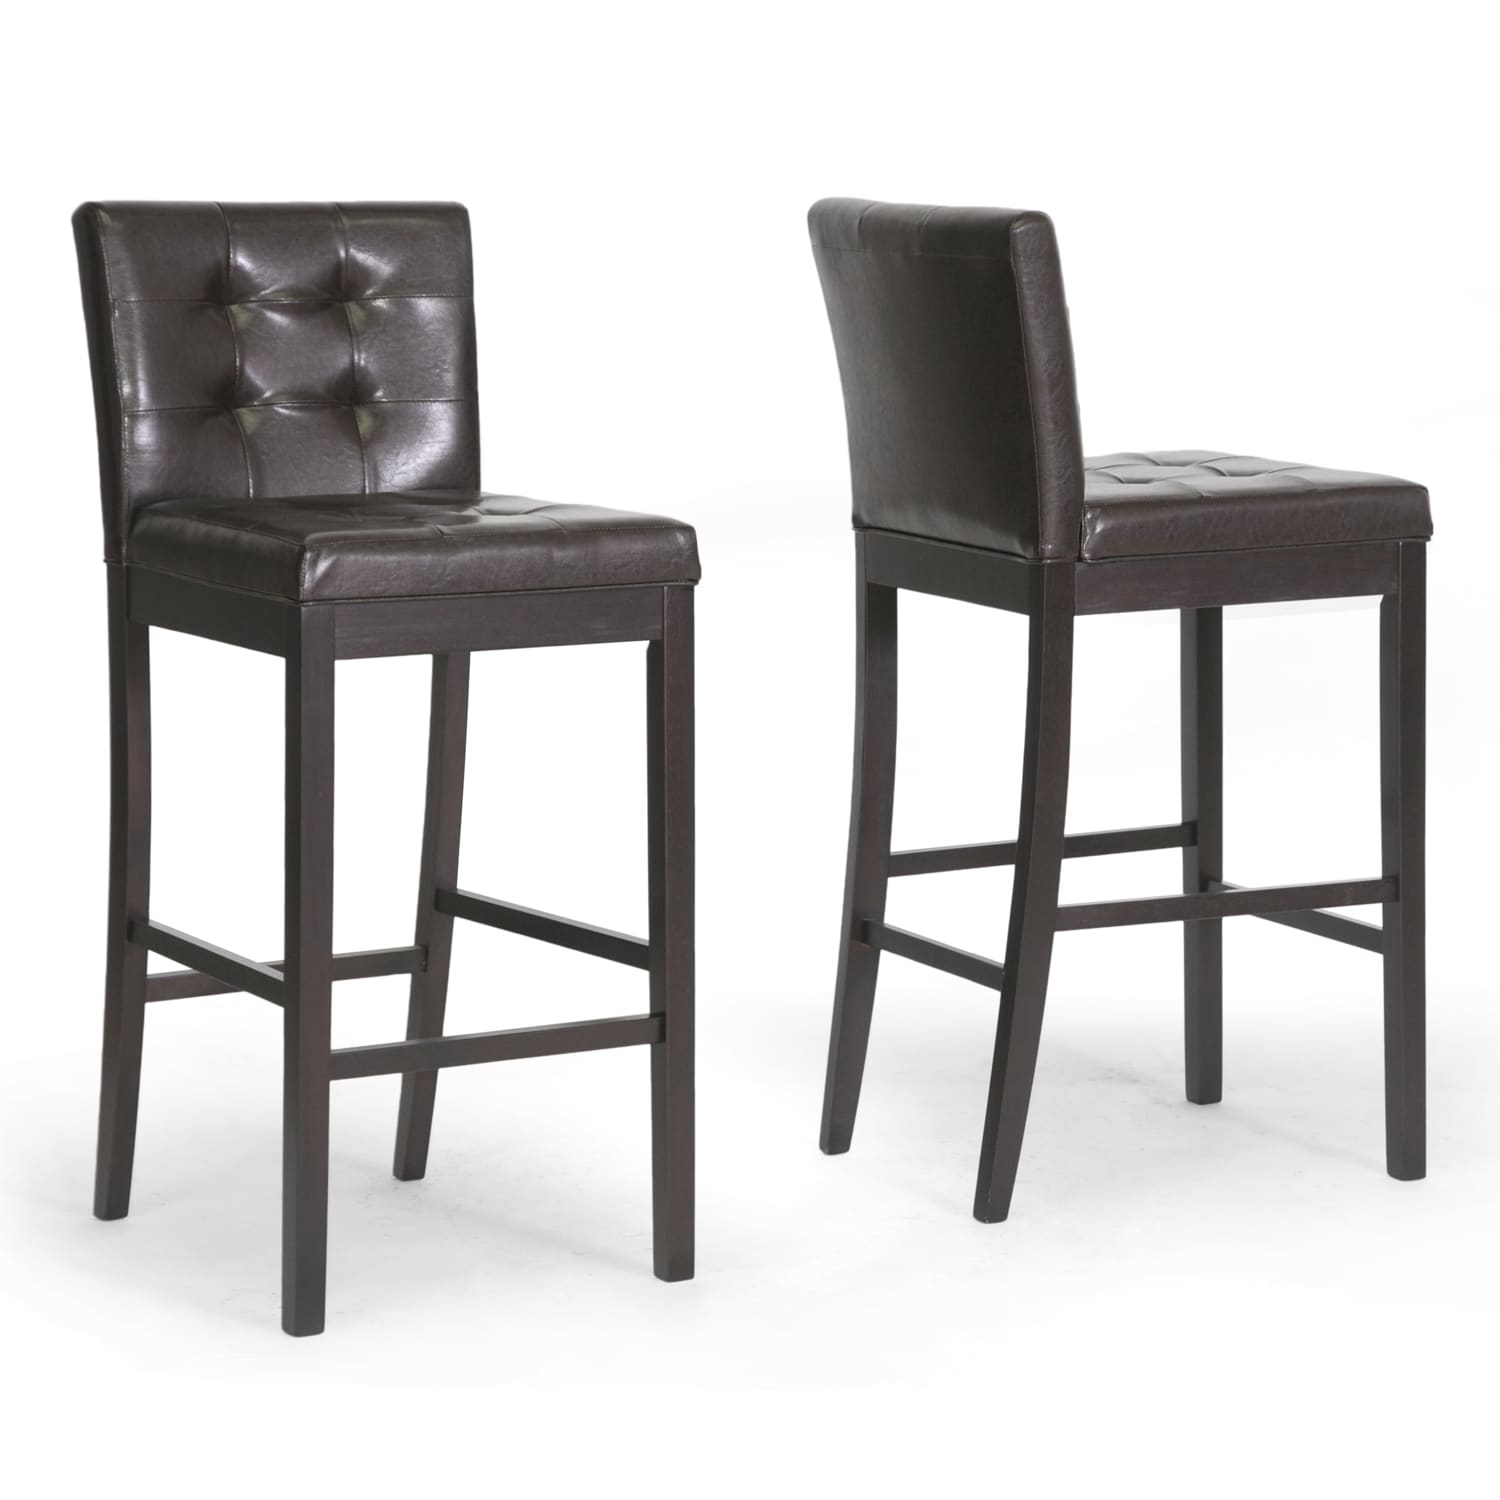 Tribecca Home Tufted Button Back Peat Microfiber Side: For Sale Baxton Studio Asher Modern Dining Chairs (Set Of 2